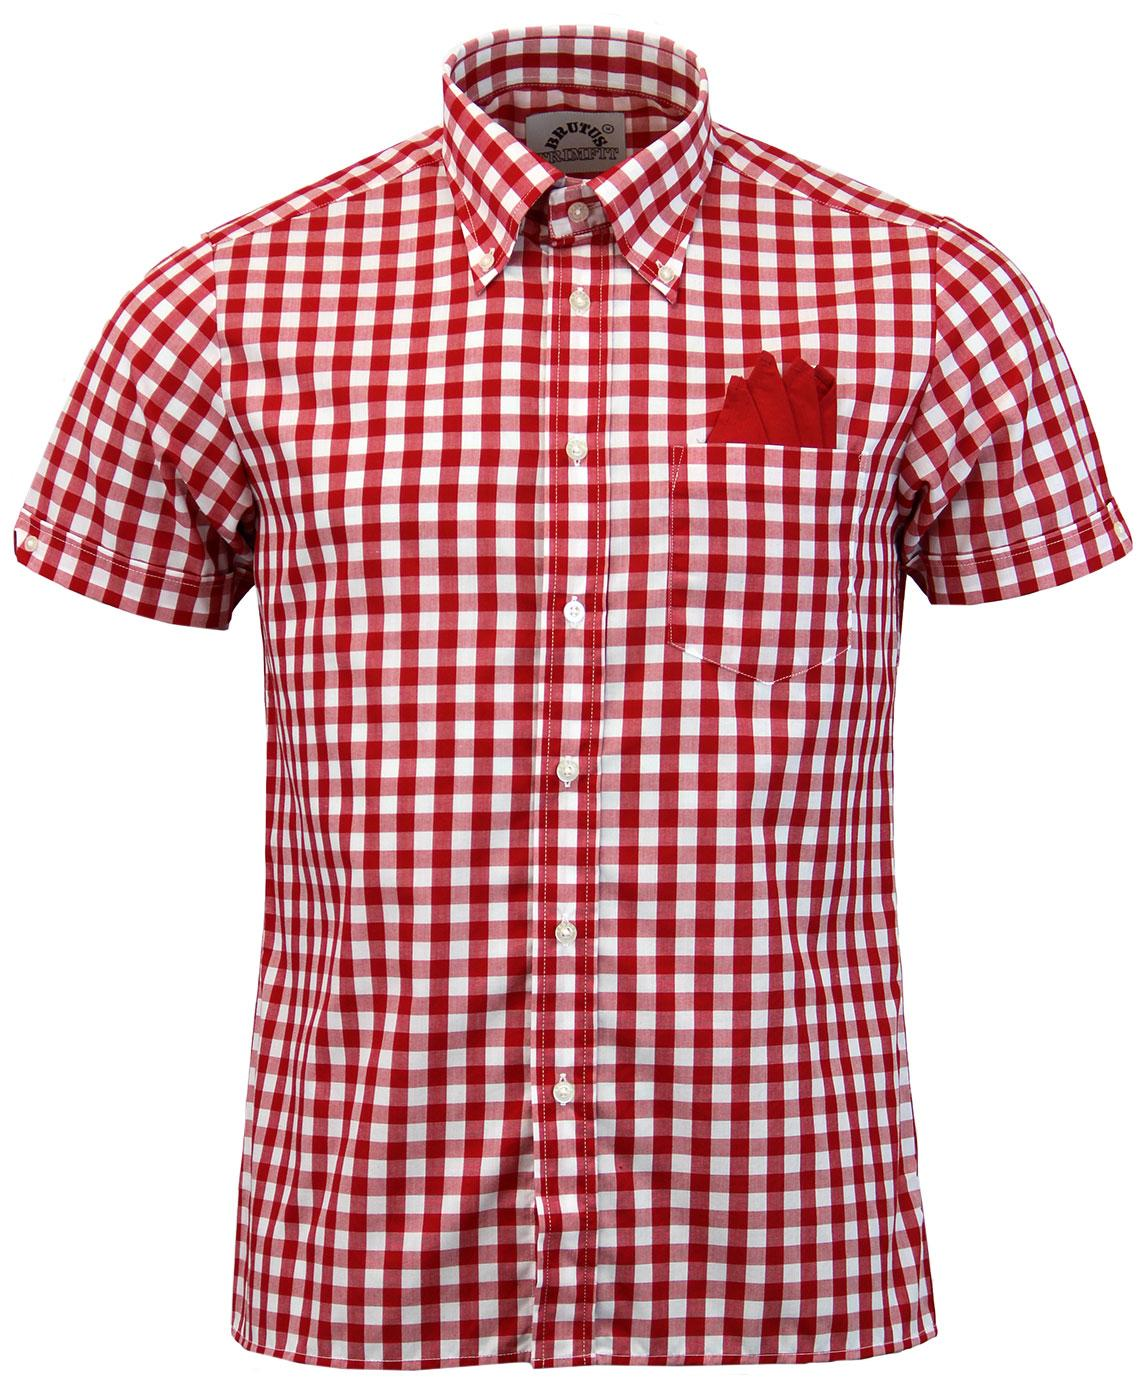 BRUTUS TRIMFIT Retro Mod 60s Large Gingham Shirt